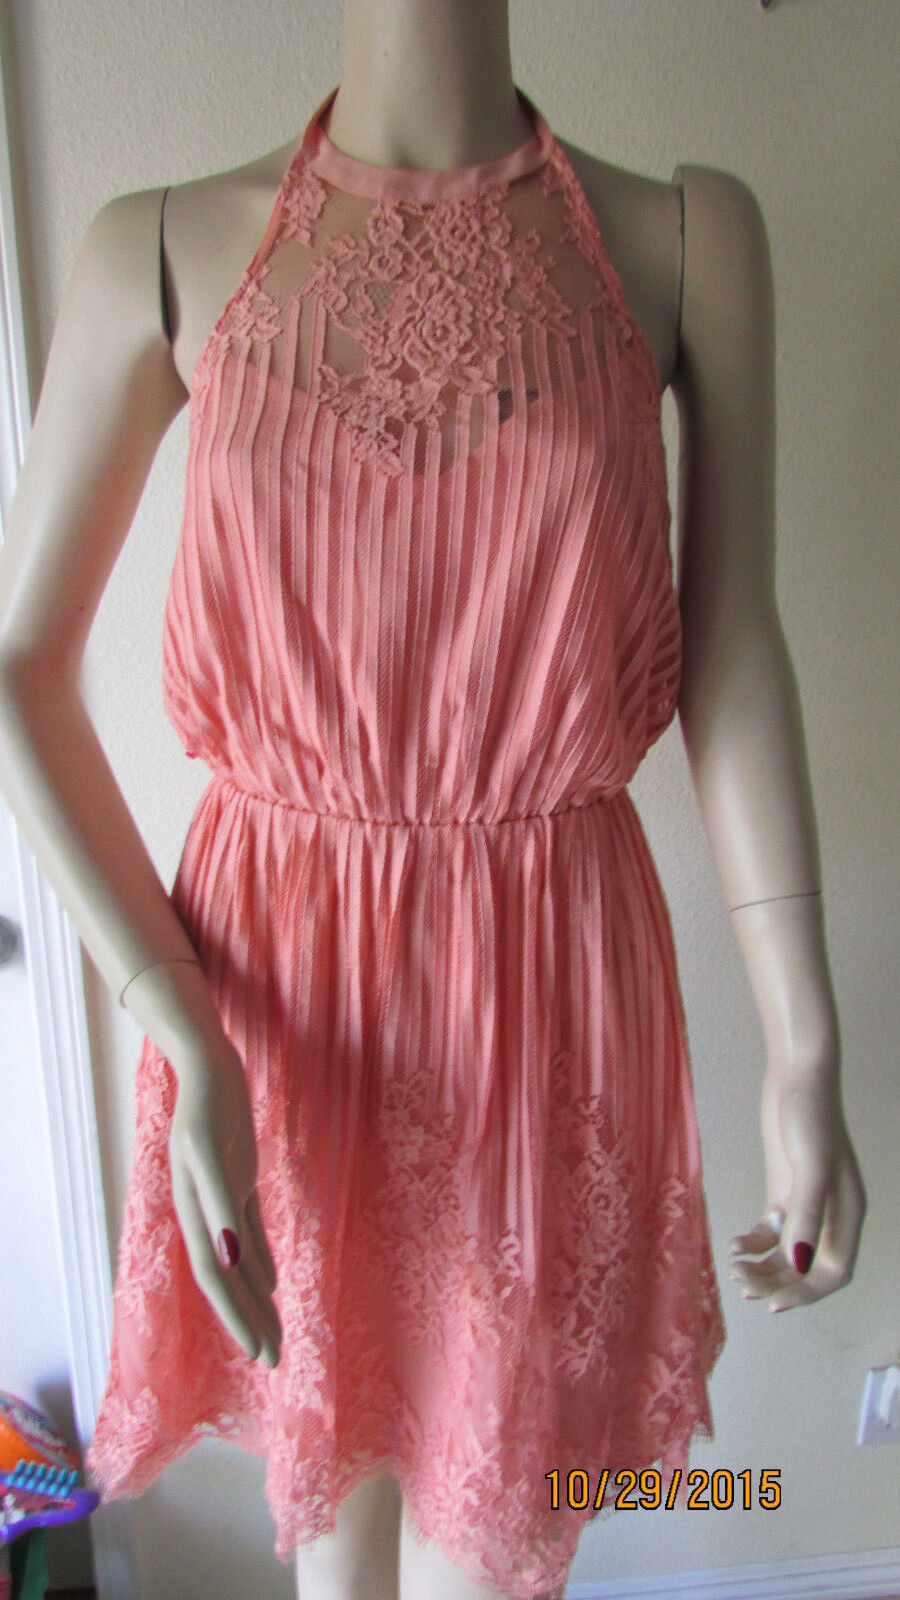 NWT BEBE STRIPED LACE LACE LACE HALTER DRESS ce6ae2